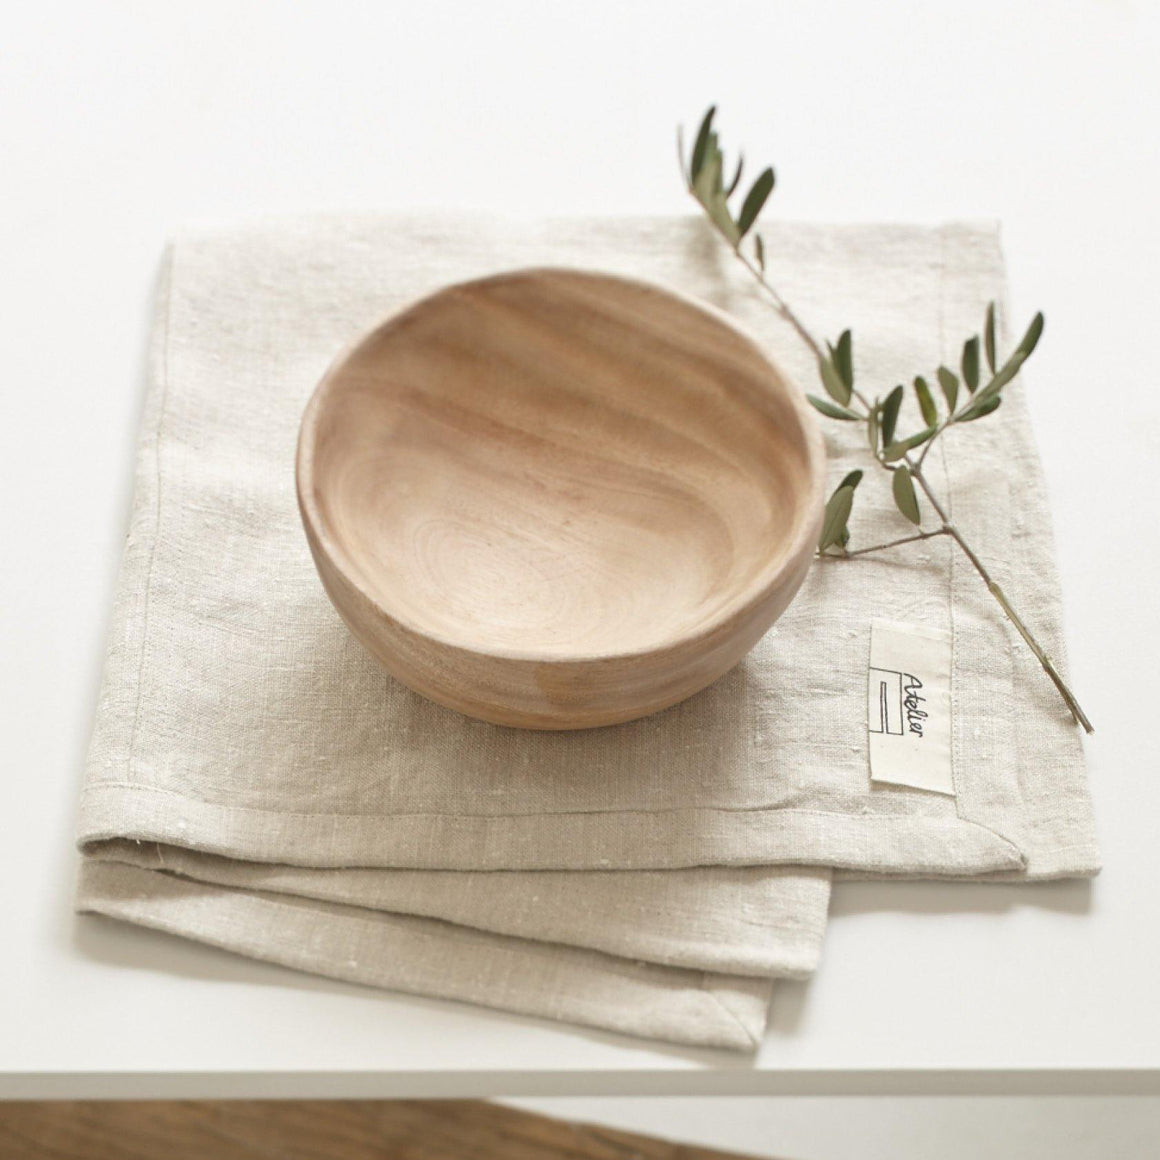 bol en bois de margousier fairtrade made in India Sukha